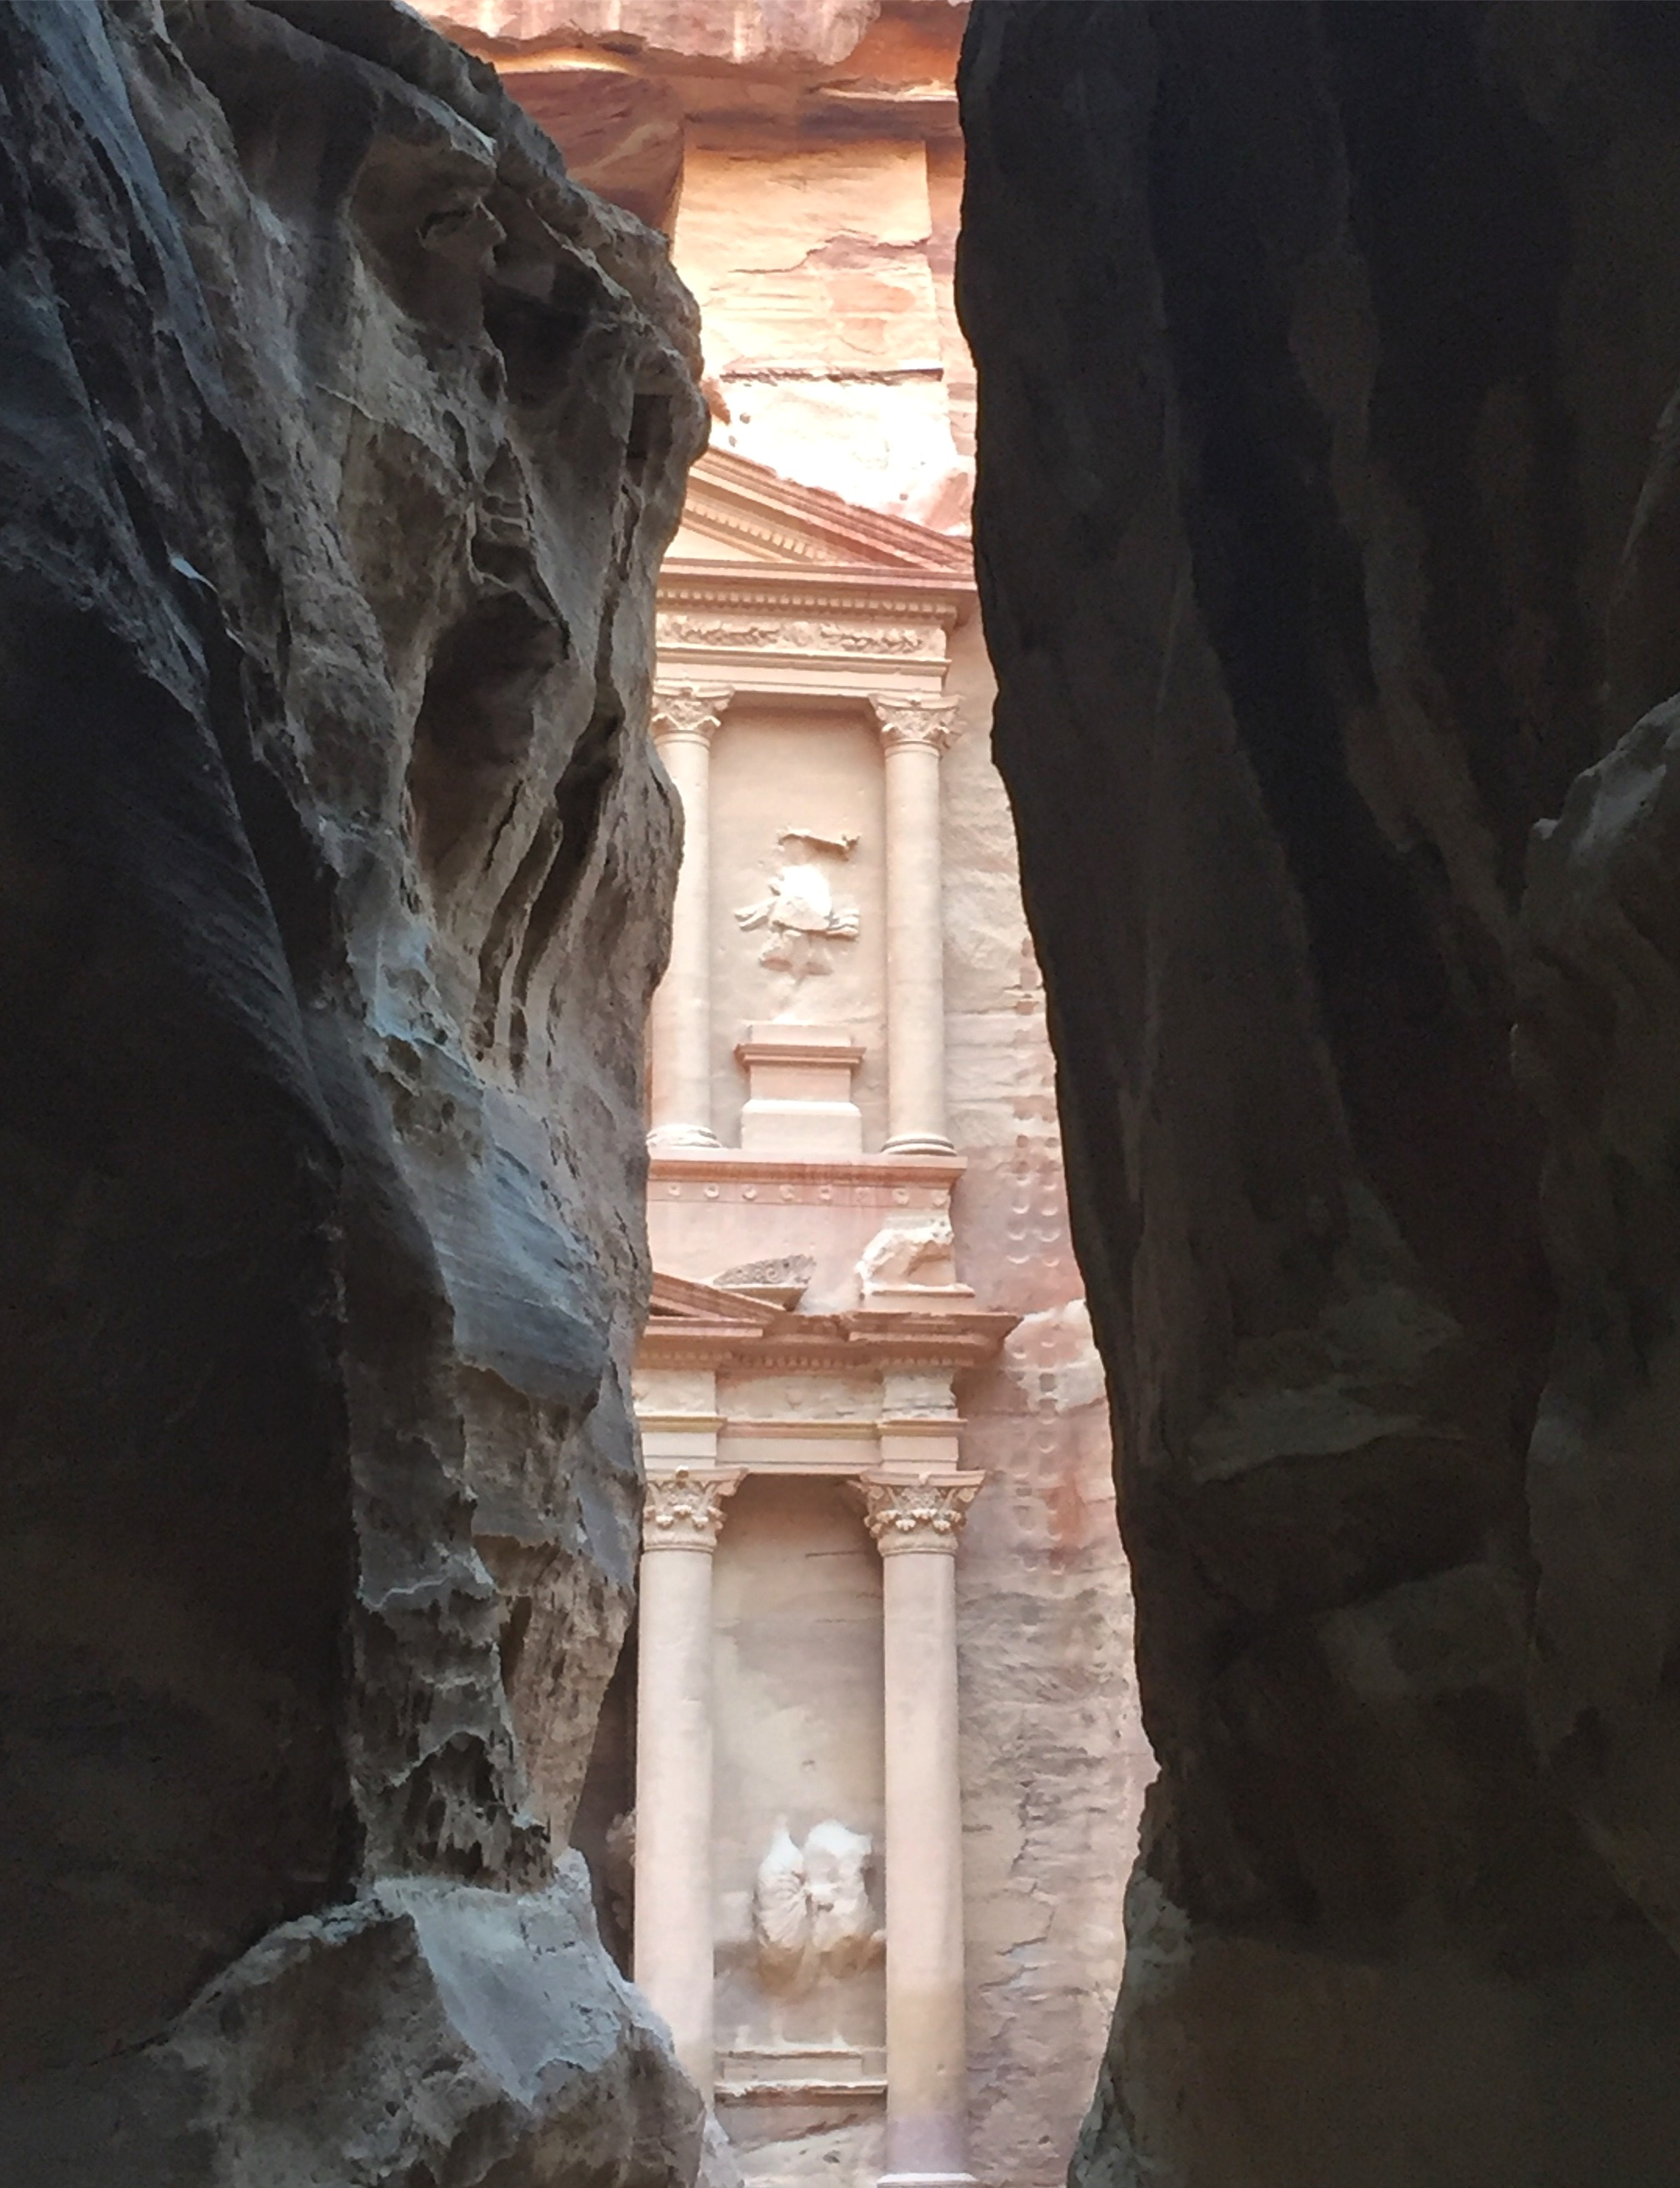 The first glimpse of the Treasury from the Siq